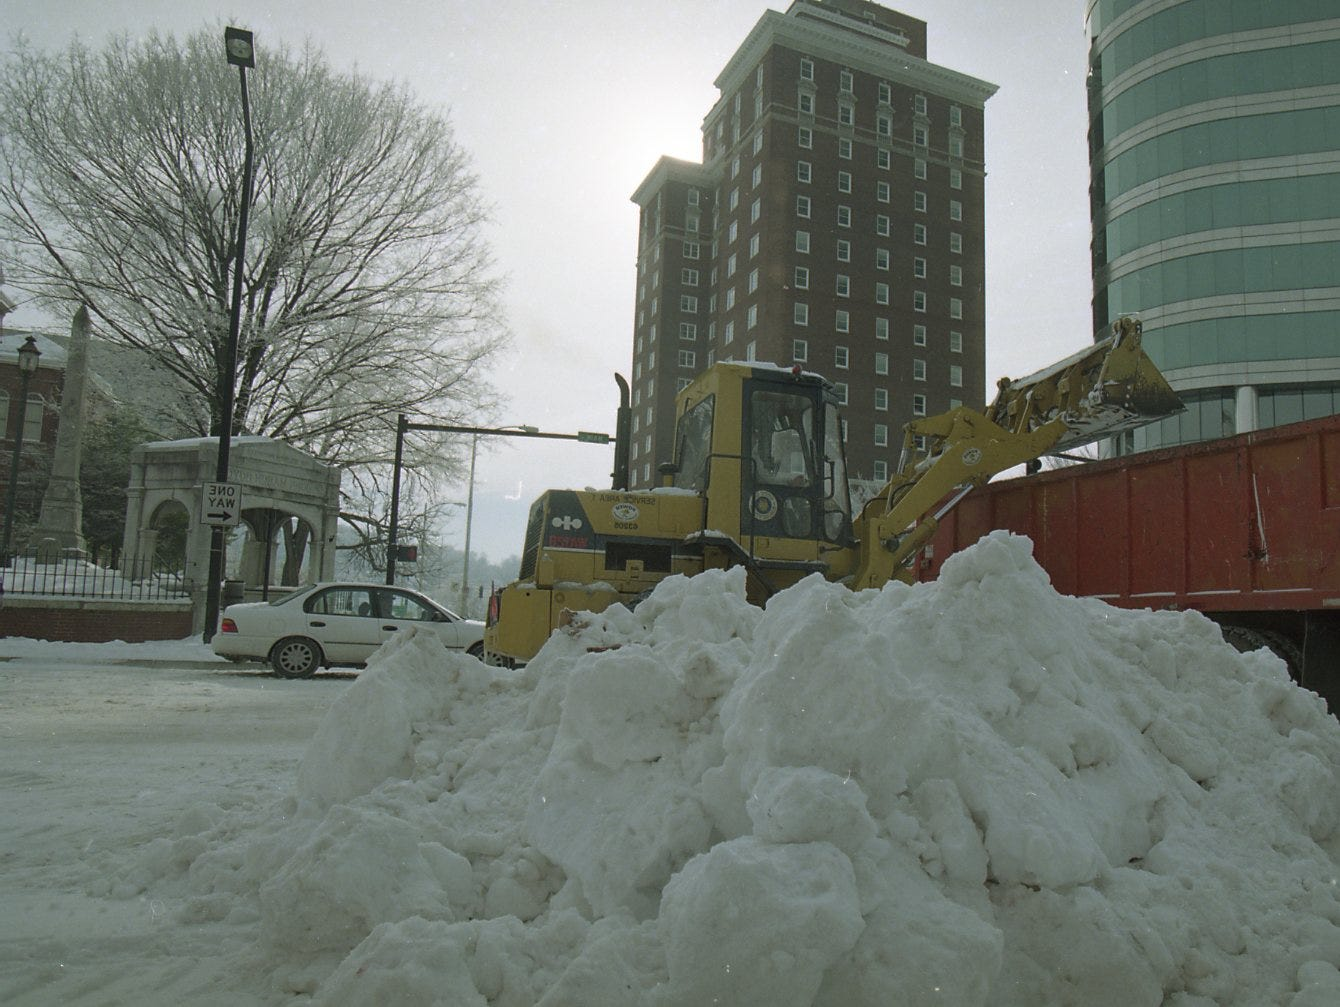 City street crews use a front end loader to remove large piles of plowed snow from the corner of Gay St. and Main St. in downtown Knoxville in February 1996.